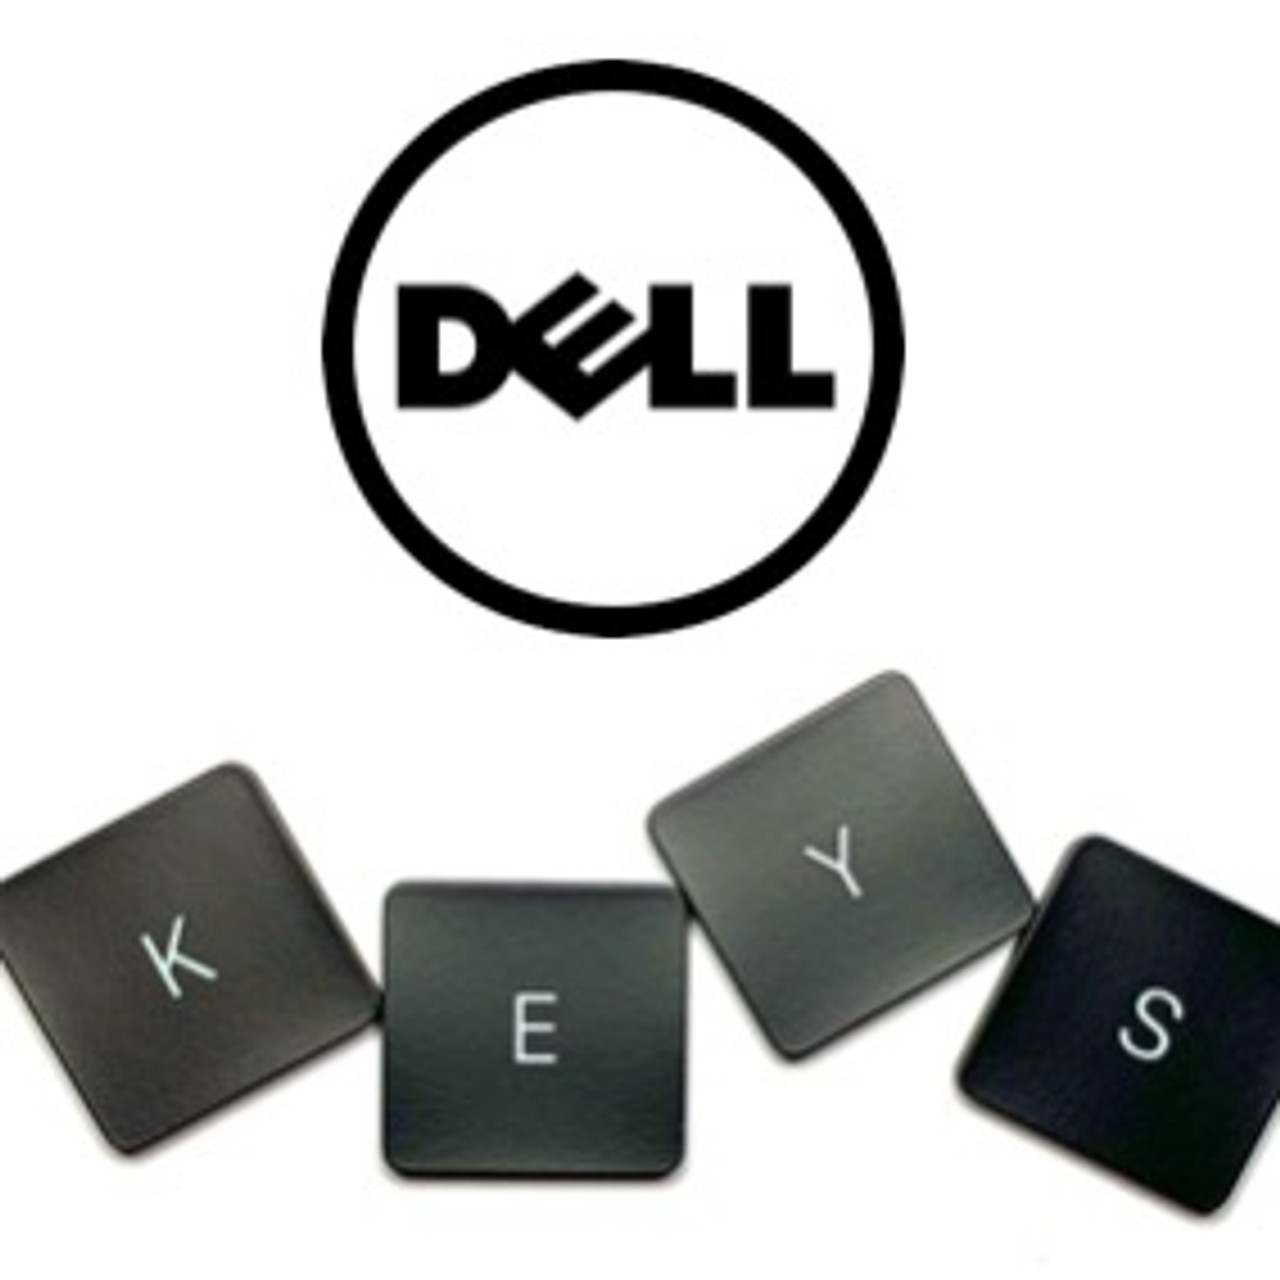 Dell Vostro 2521 Laptop Keyboard Key Replacement